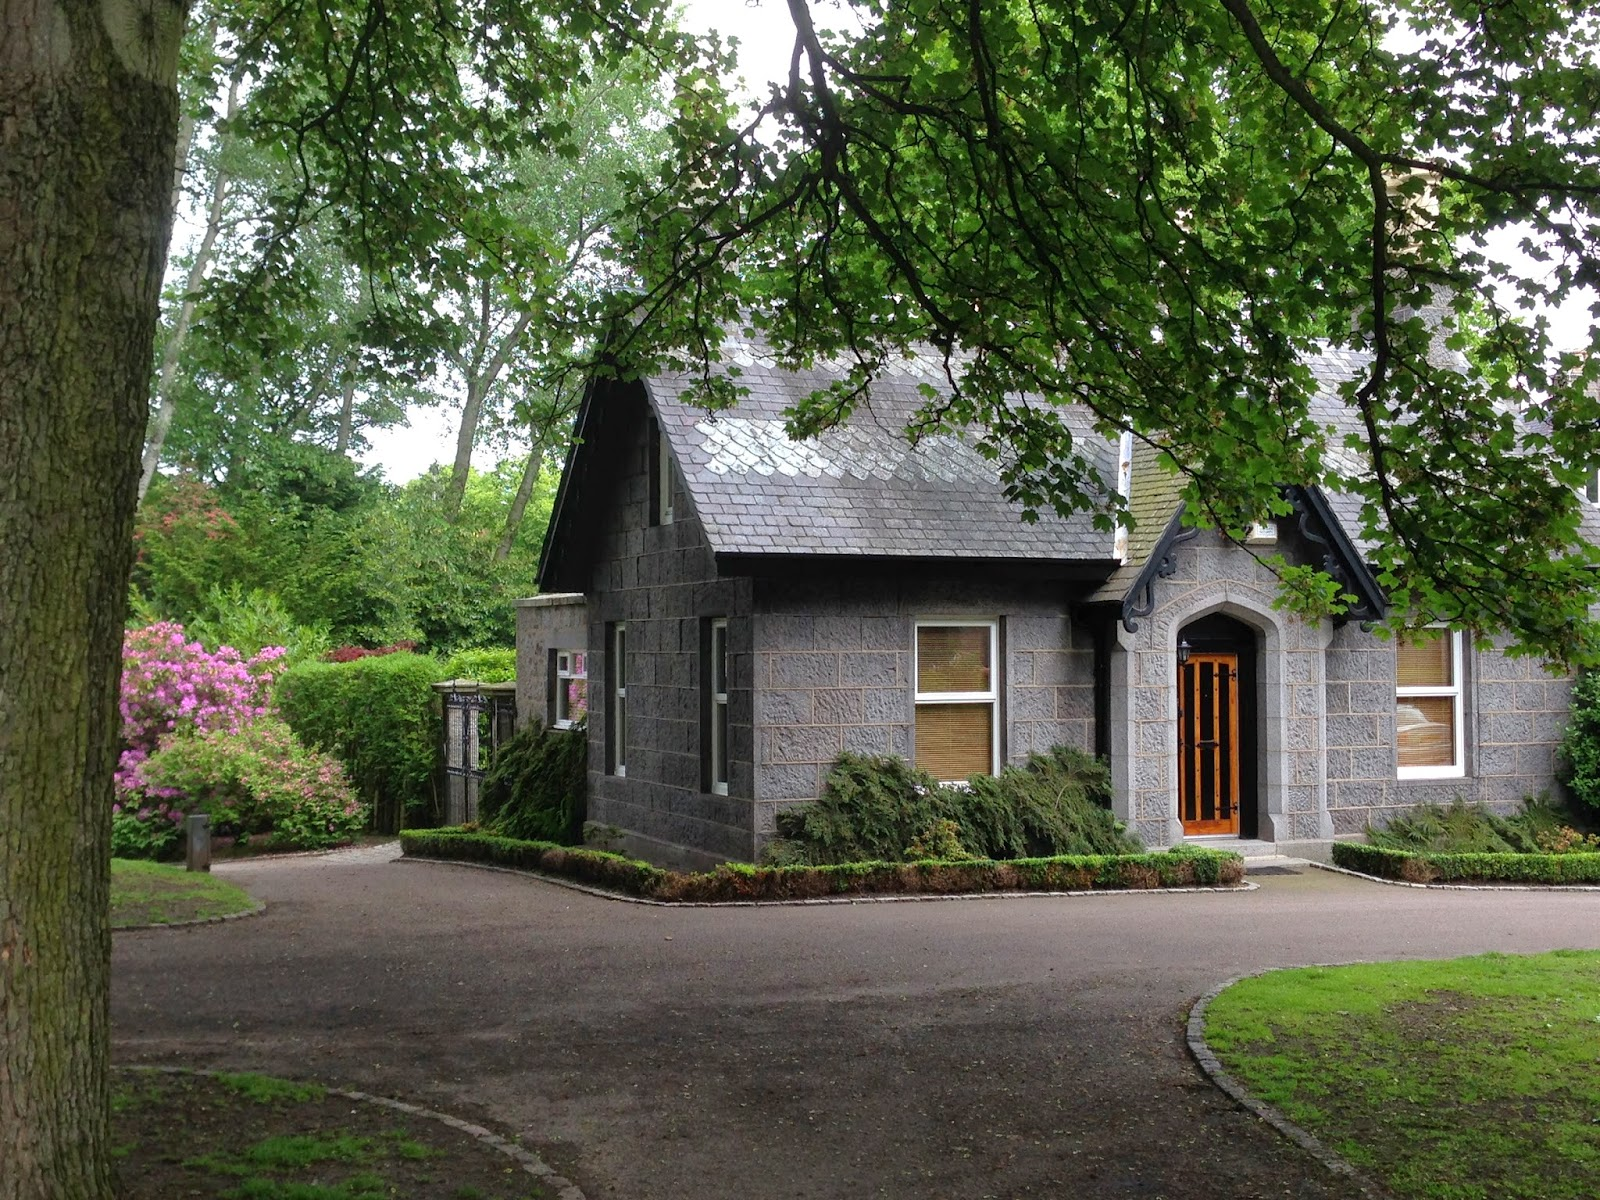 My Life in Scotland: Finding a Rental Property in Scotland